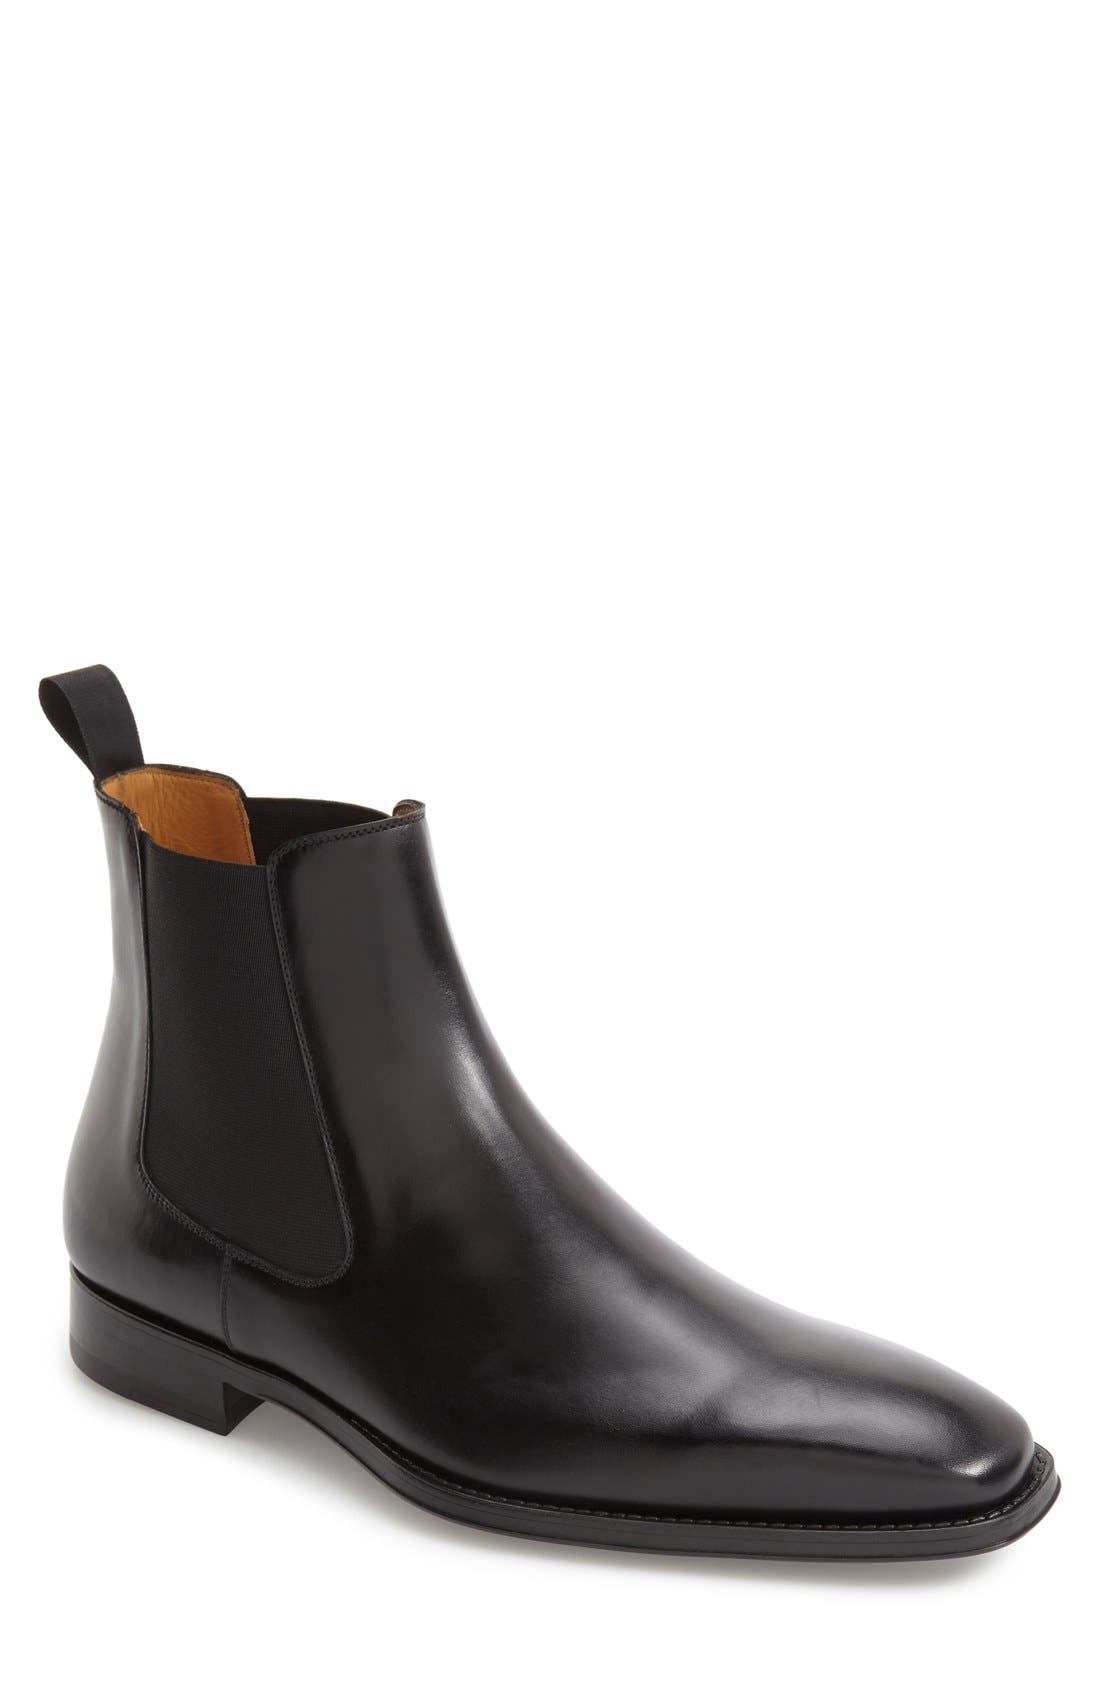 MAGNANNI 'Sean' Chelsea Boot, Main, color, BLACK